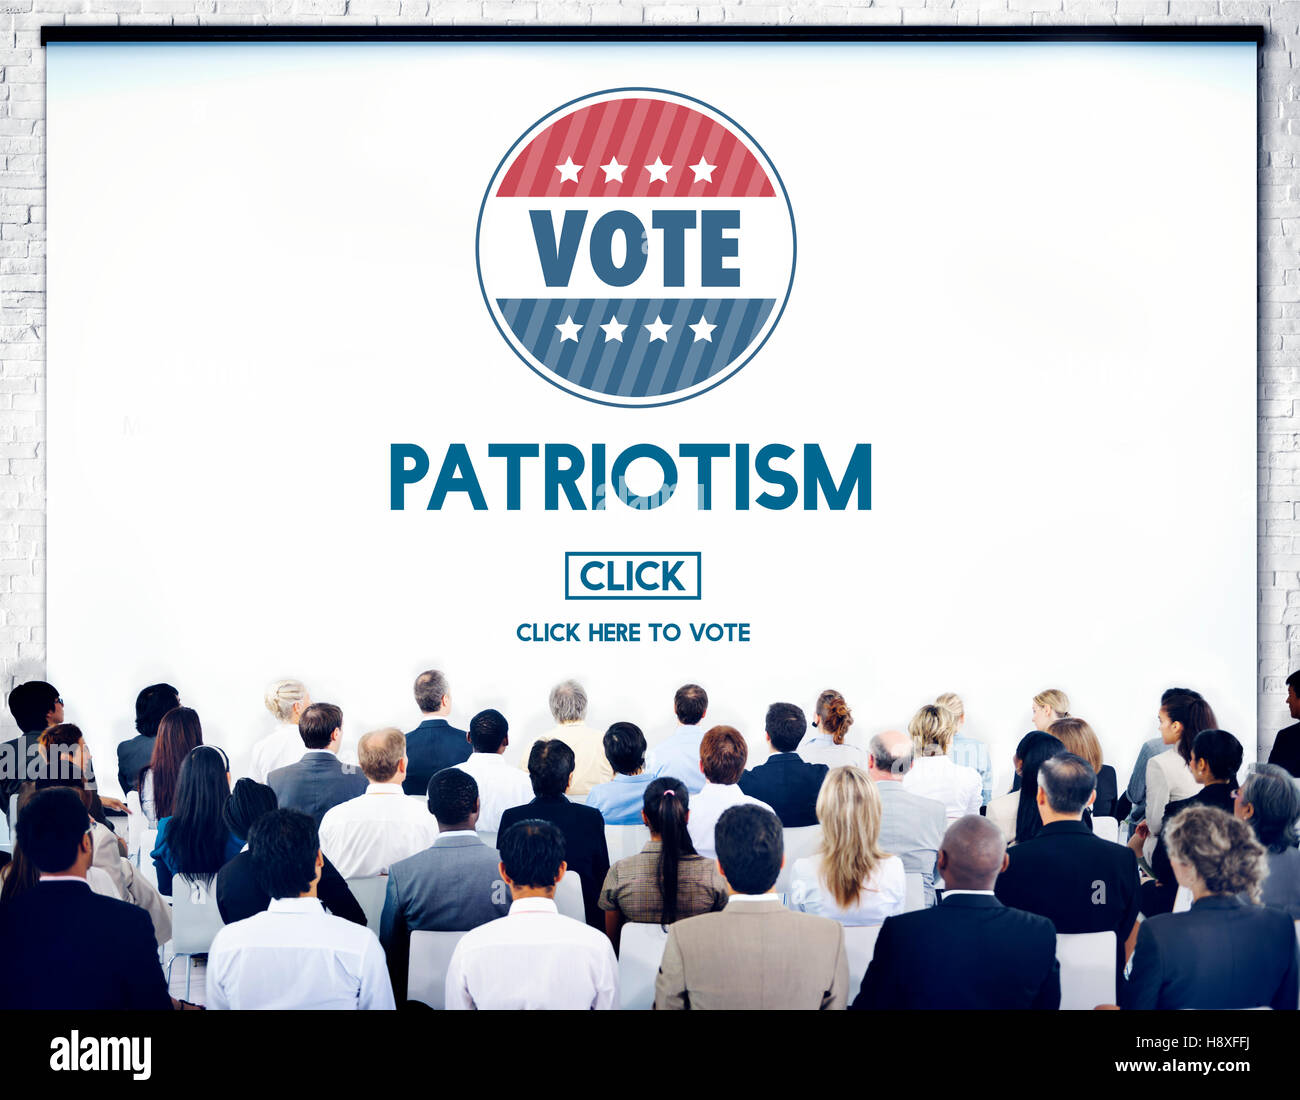 Patriotism Country Election Freedom National Concept - Stock Image